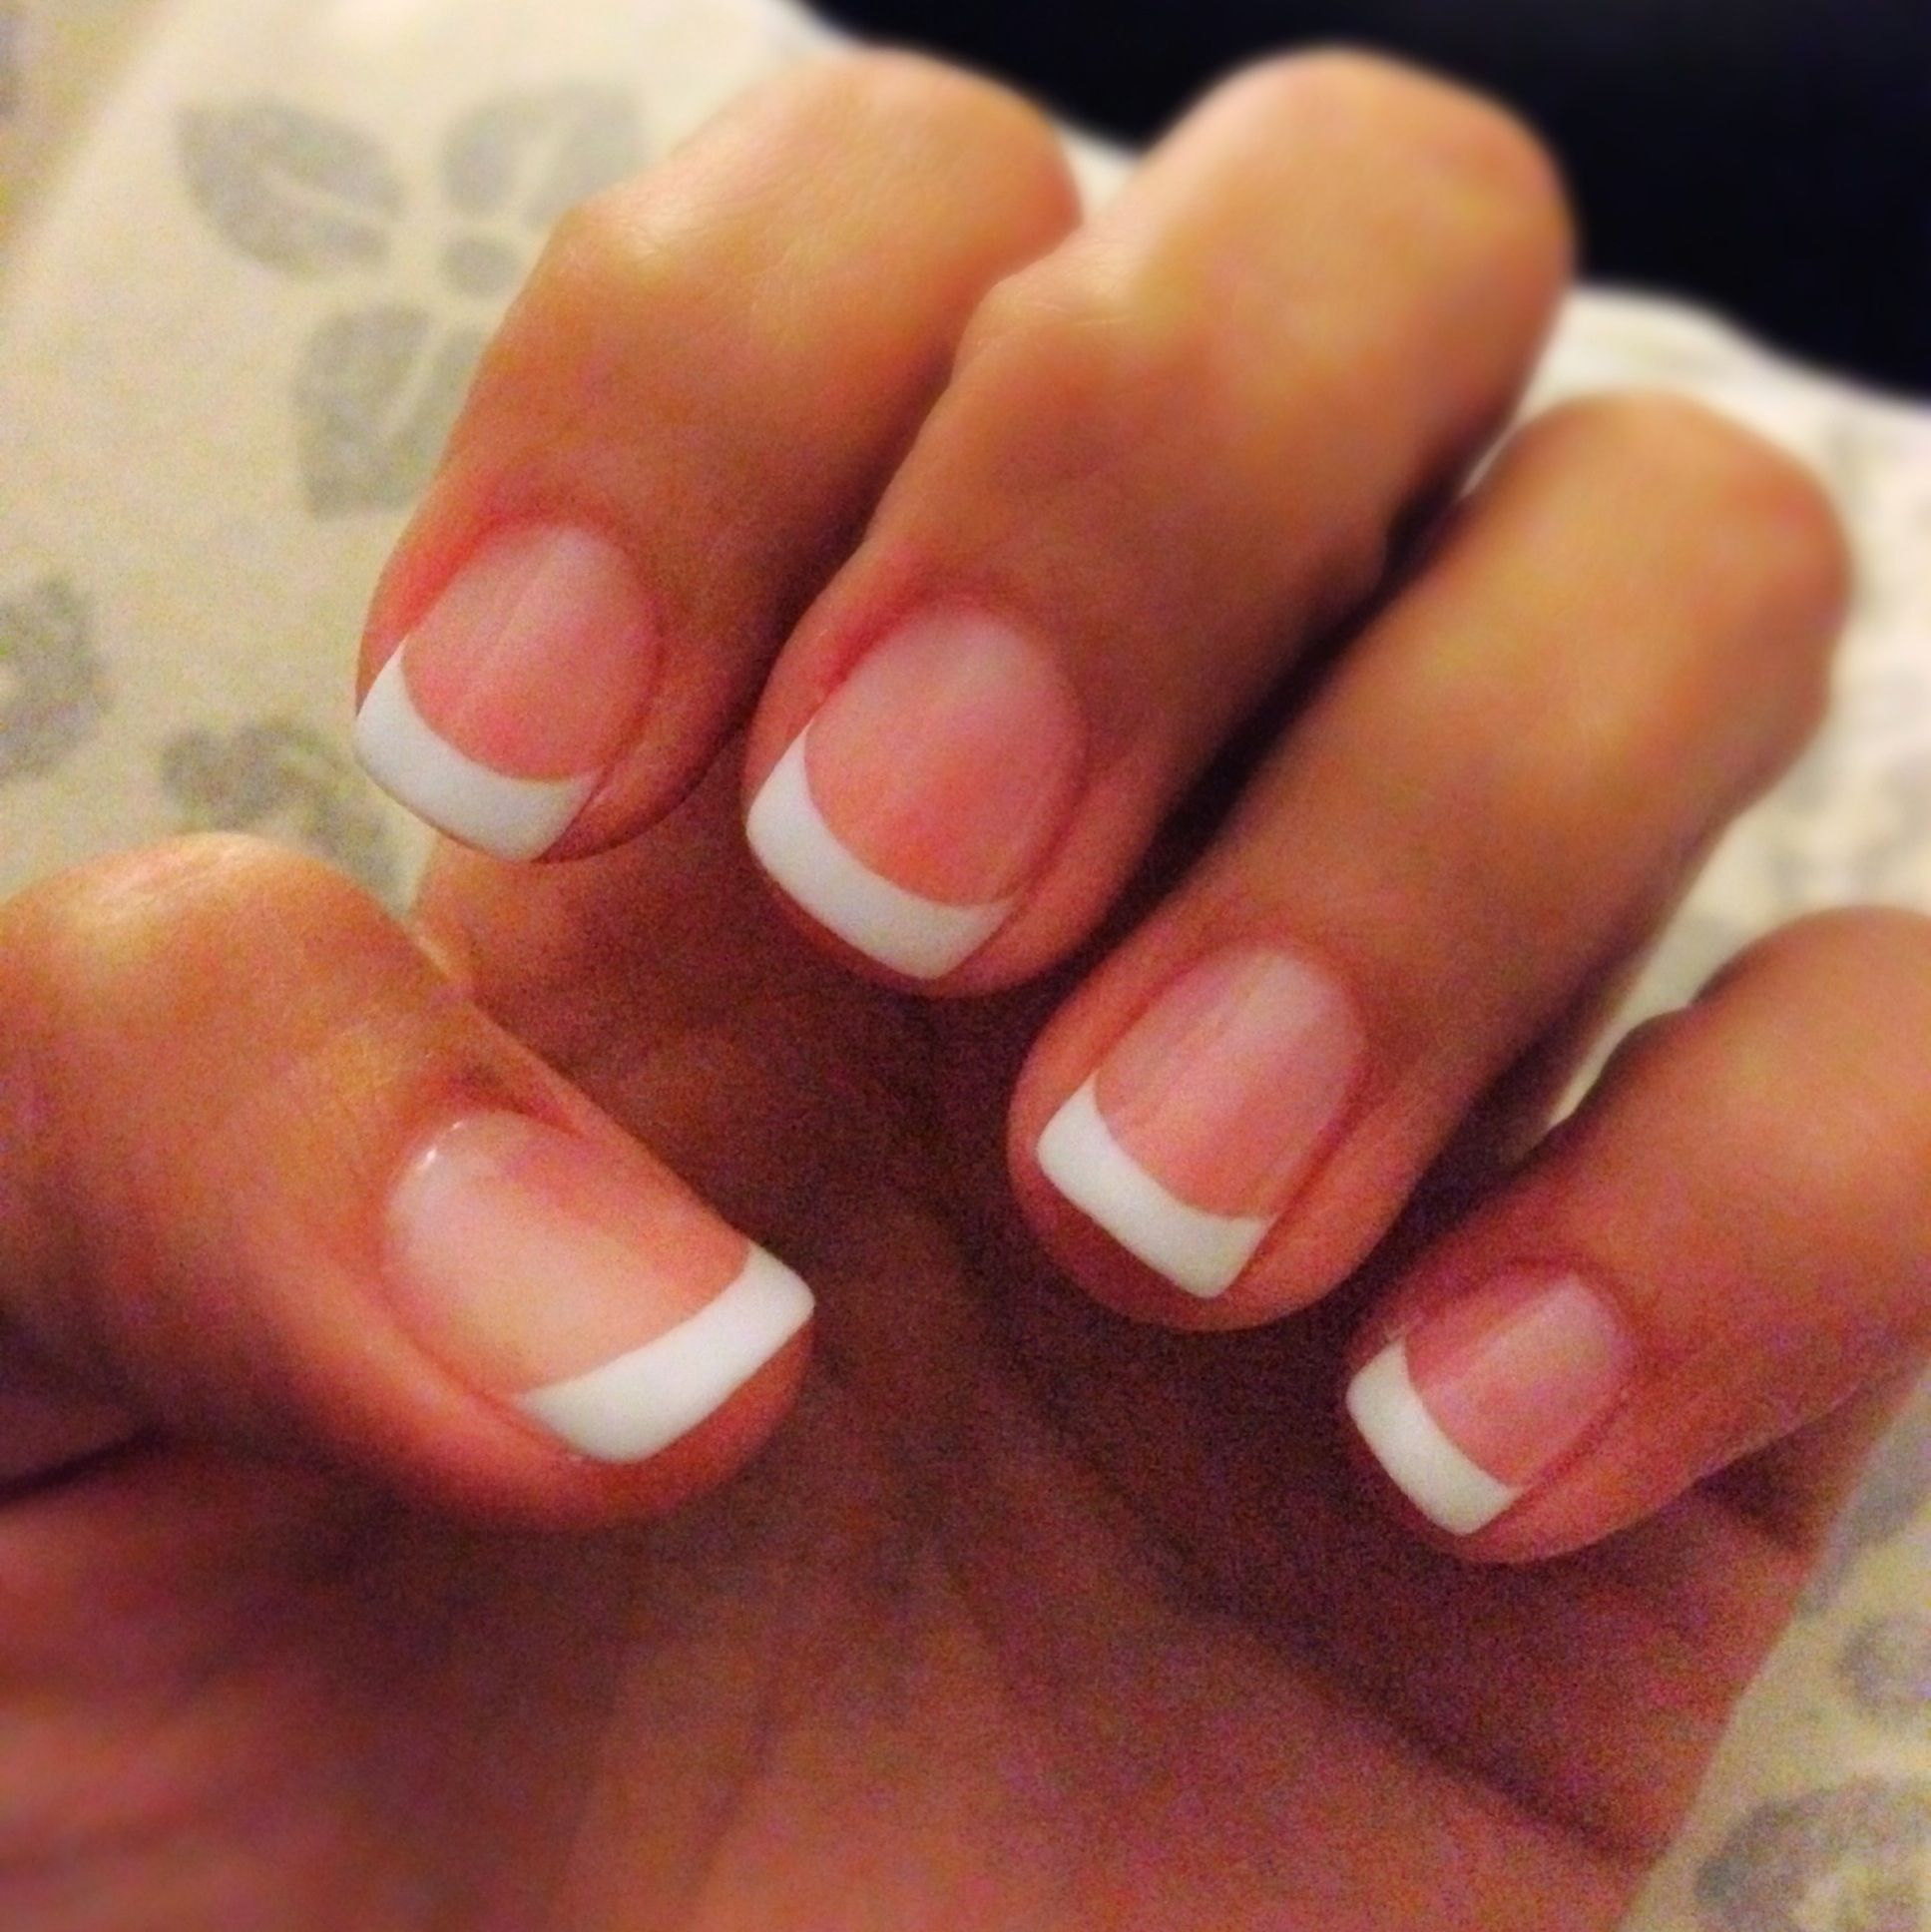 French Ombre Nail Design Nail Art Nail Salon Irvine Newport Beach With Images Ombre Nail Designs Nail Art Ombre Powder Nails